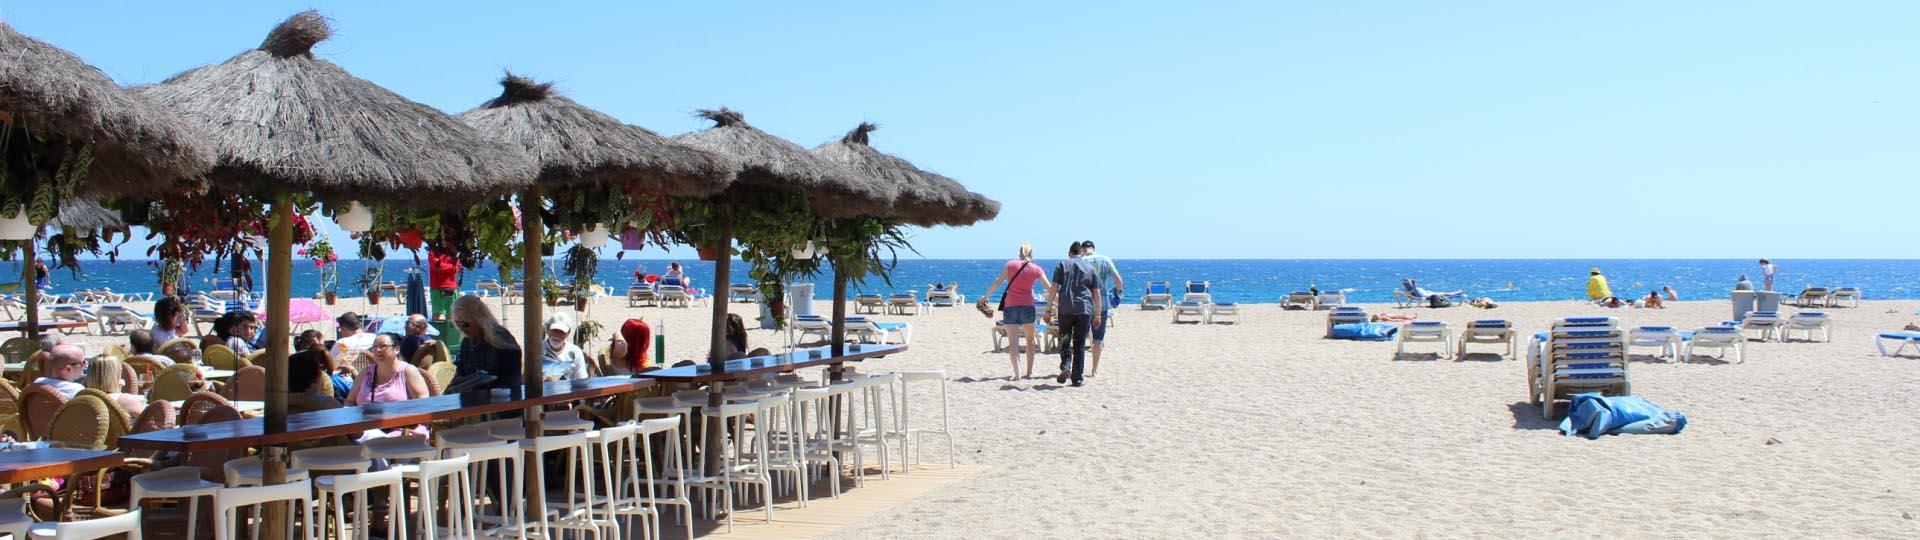 beautiful_beach_bar_lloret_de_mar2.jpg